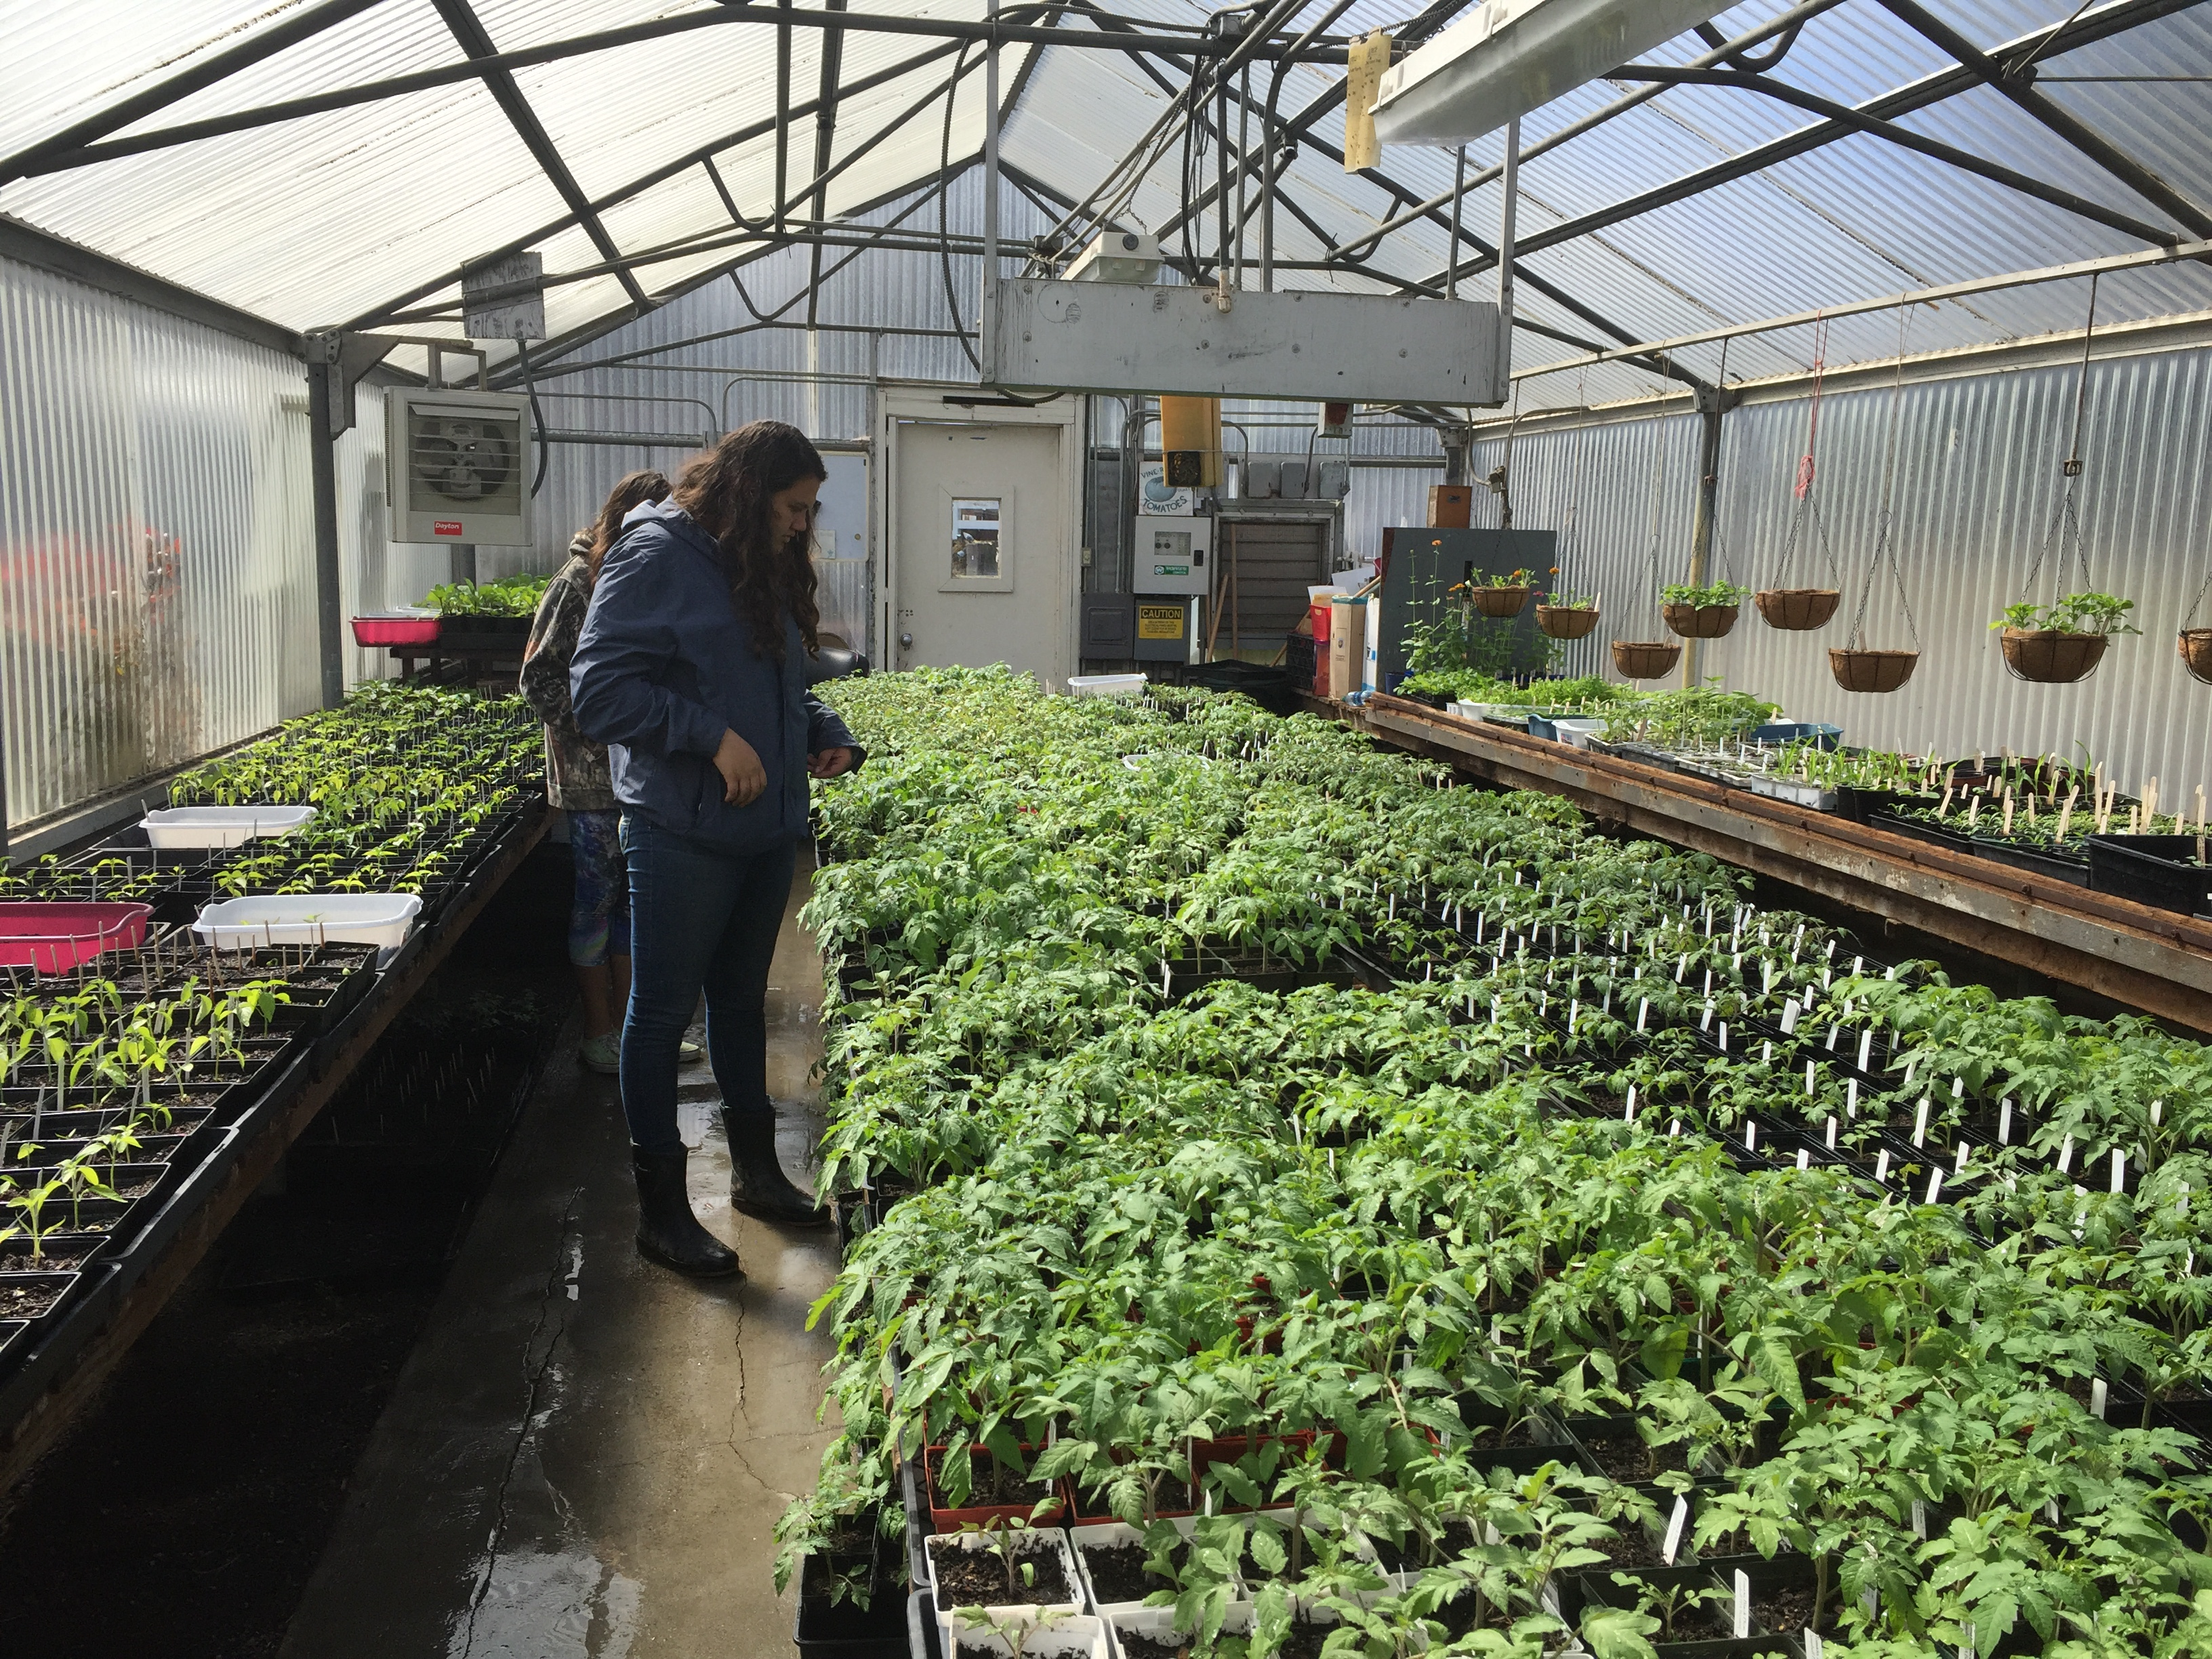 A young woman is inside a greenhouse.